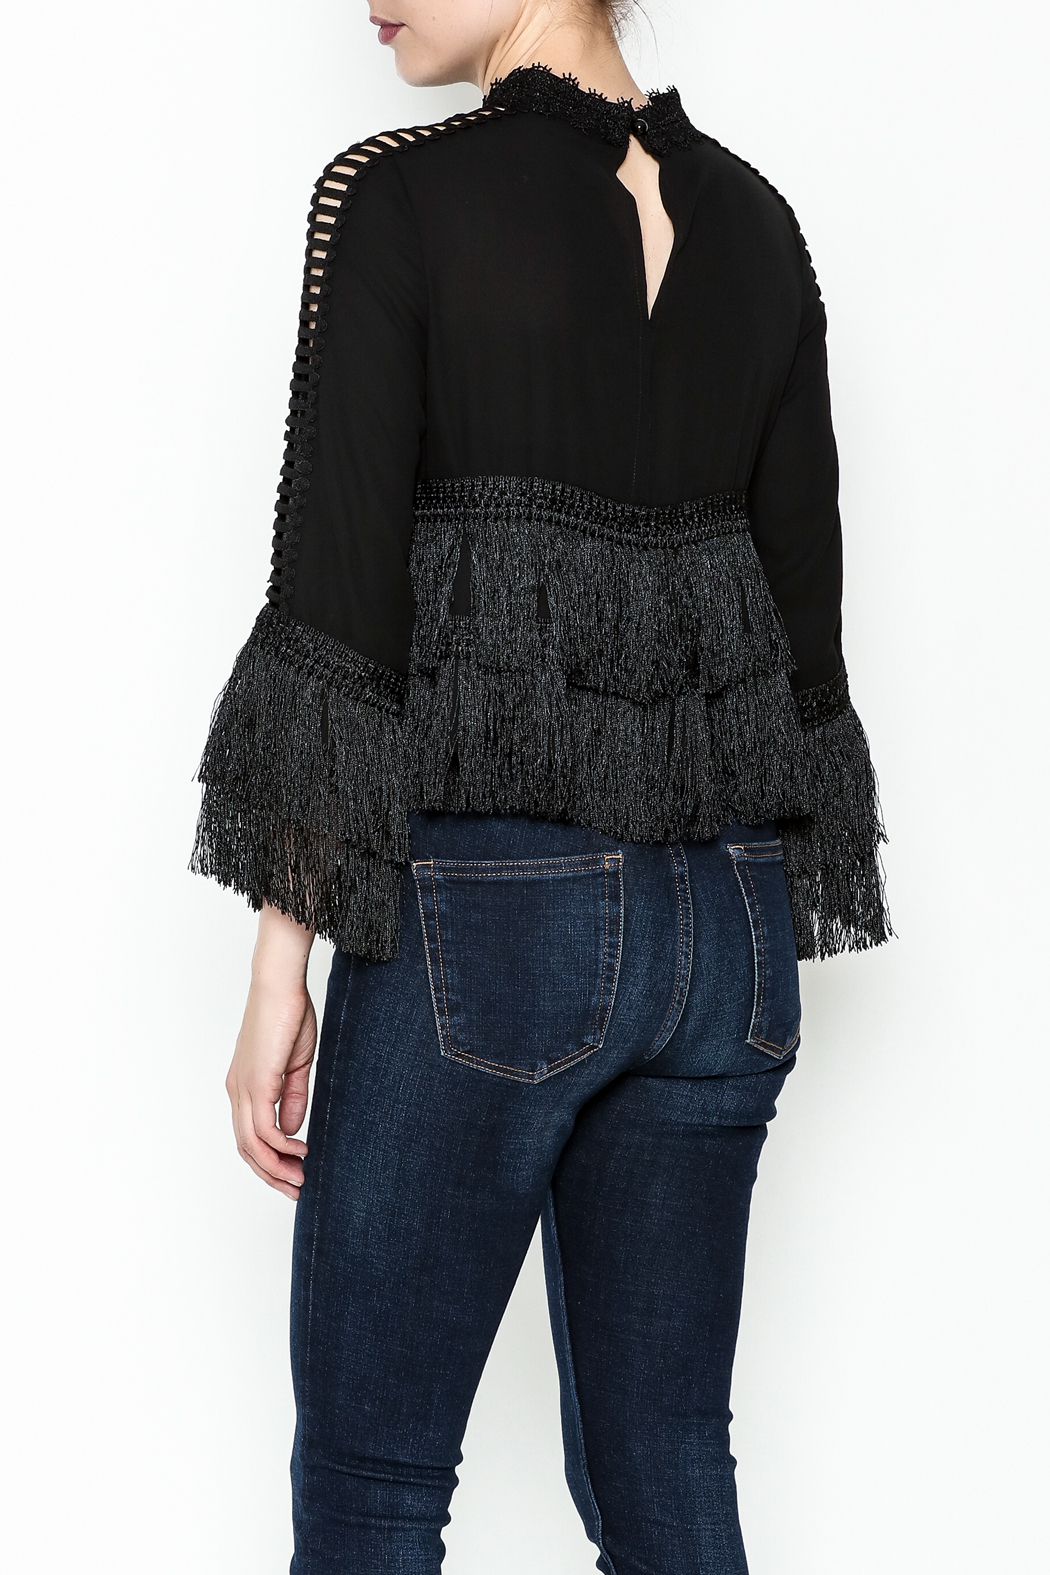 Gracia Layered Fringe Top - Back Cropped Image